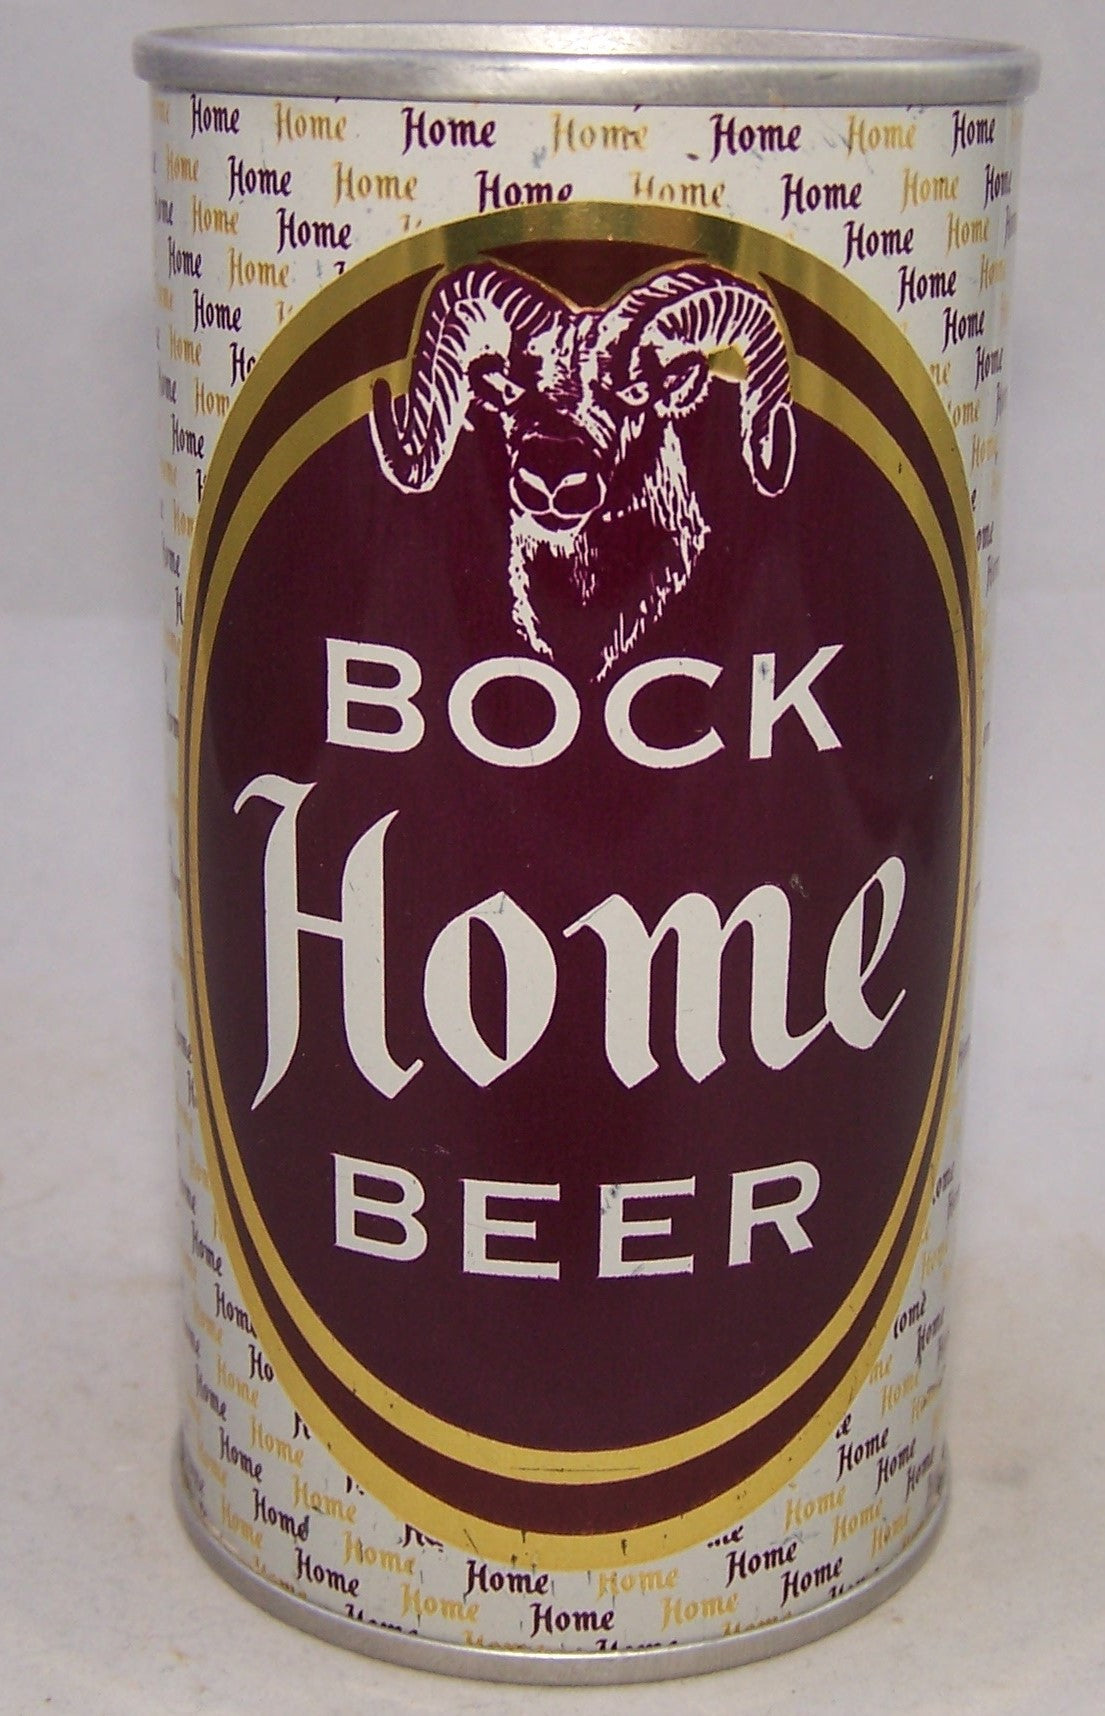 Home Bock Beer, USBC 83-18, Grade 1/1+